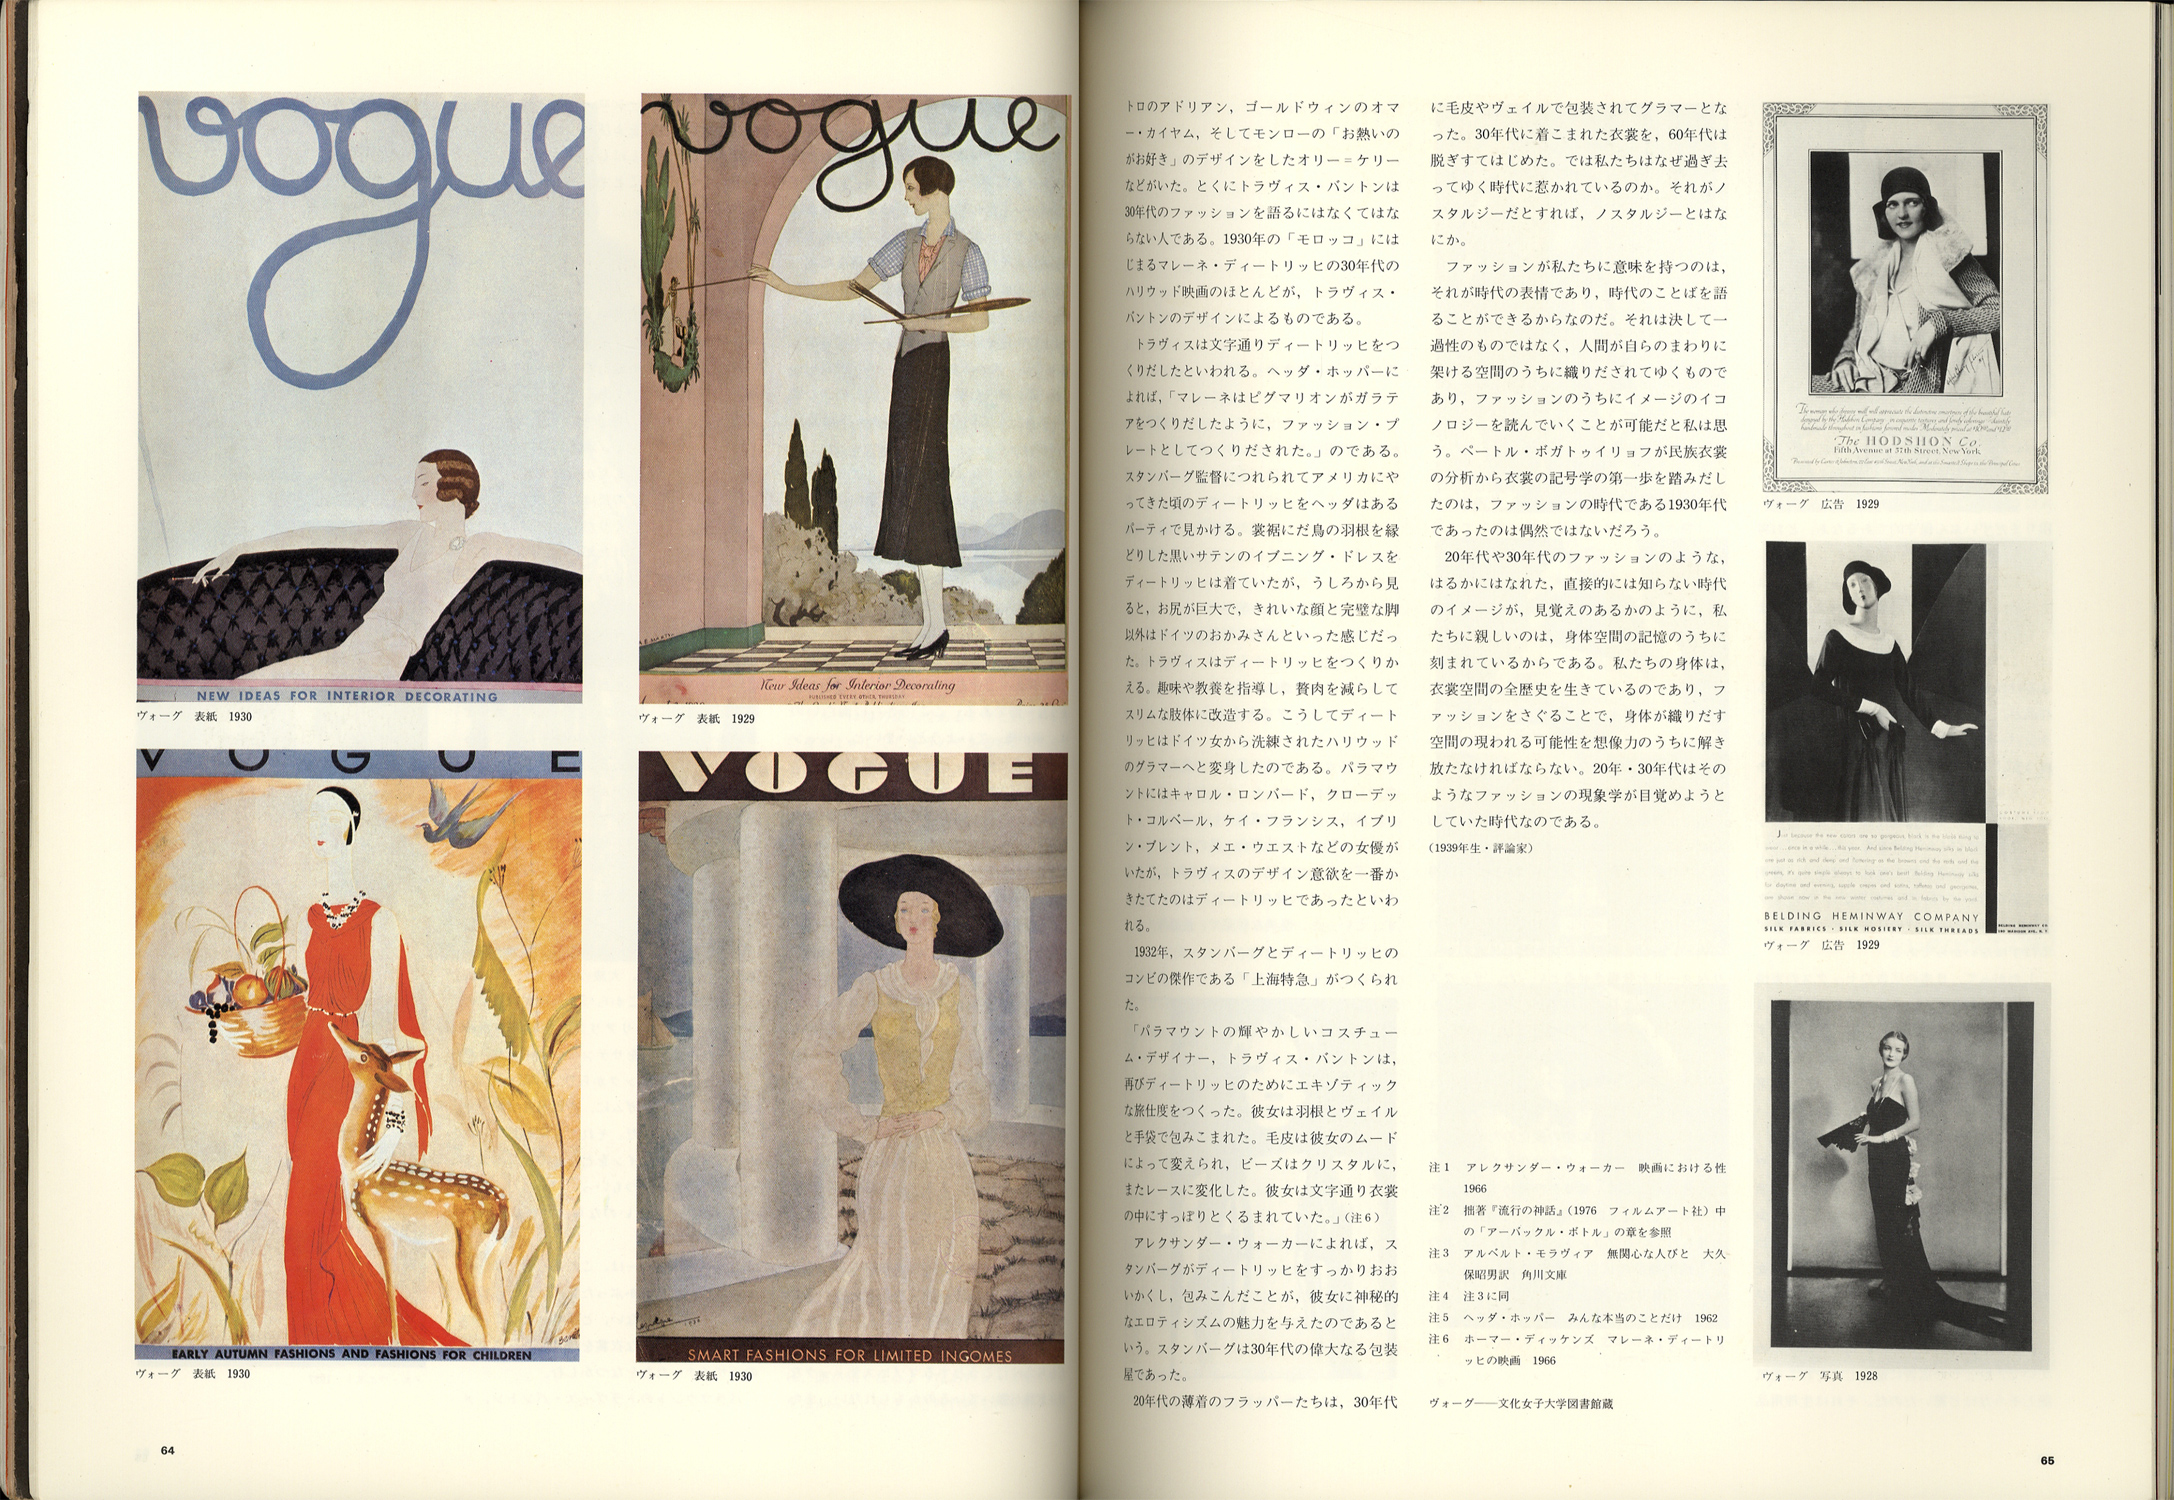 季刊 デザイン 16号・冬|a quarterly review of design autumn 1976[image3]